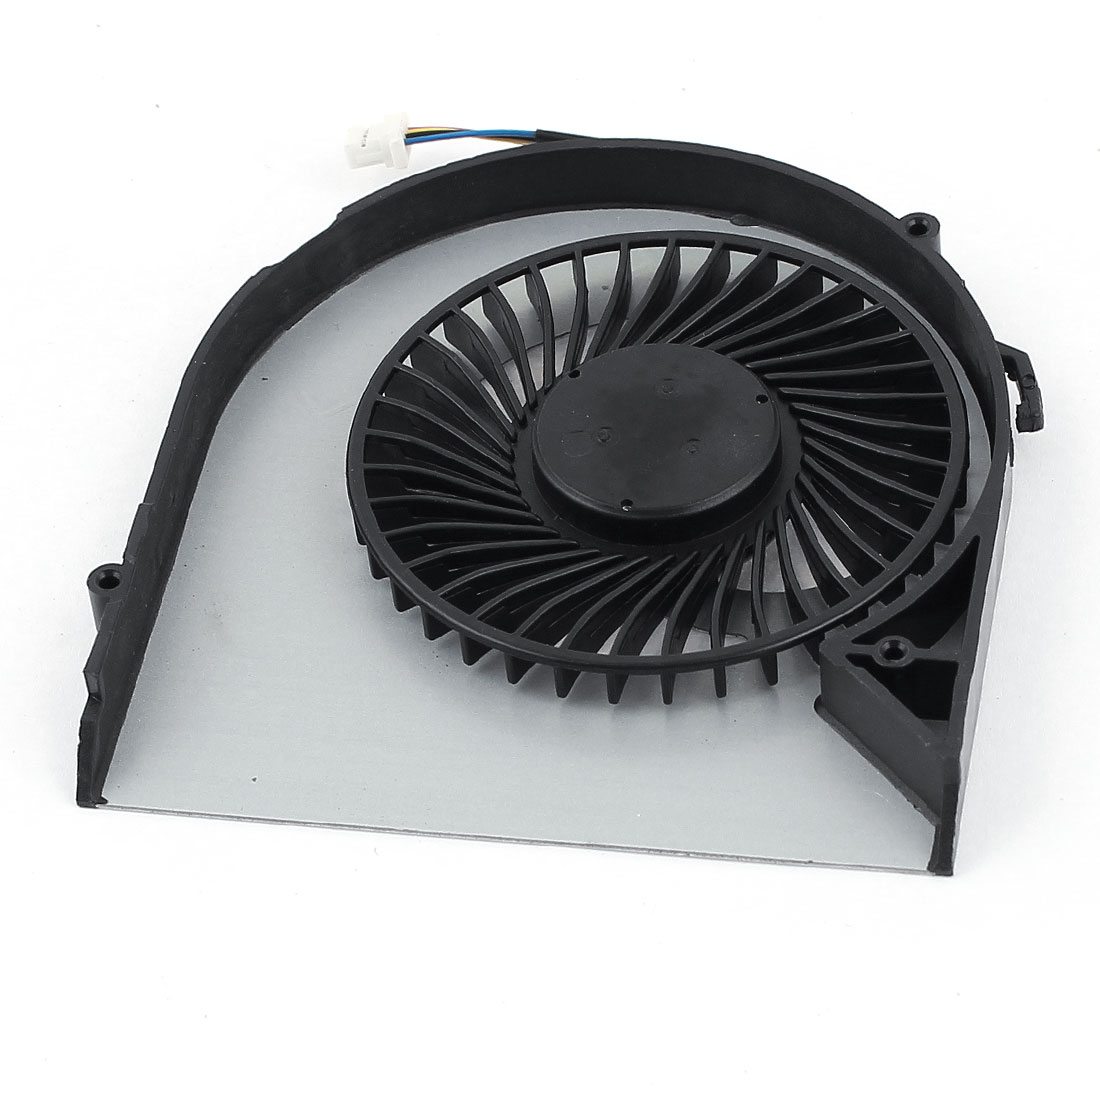 Notebook PC CPU Cooling Fan Cooler 4Pins DC 5V 0.5A for Acer Aspire V5-571